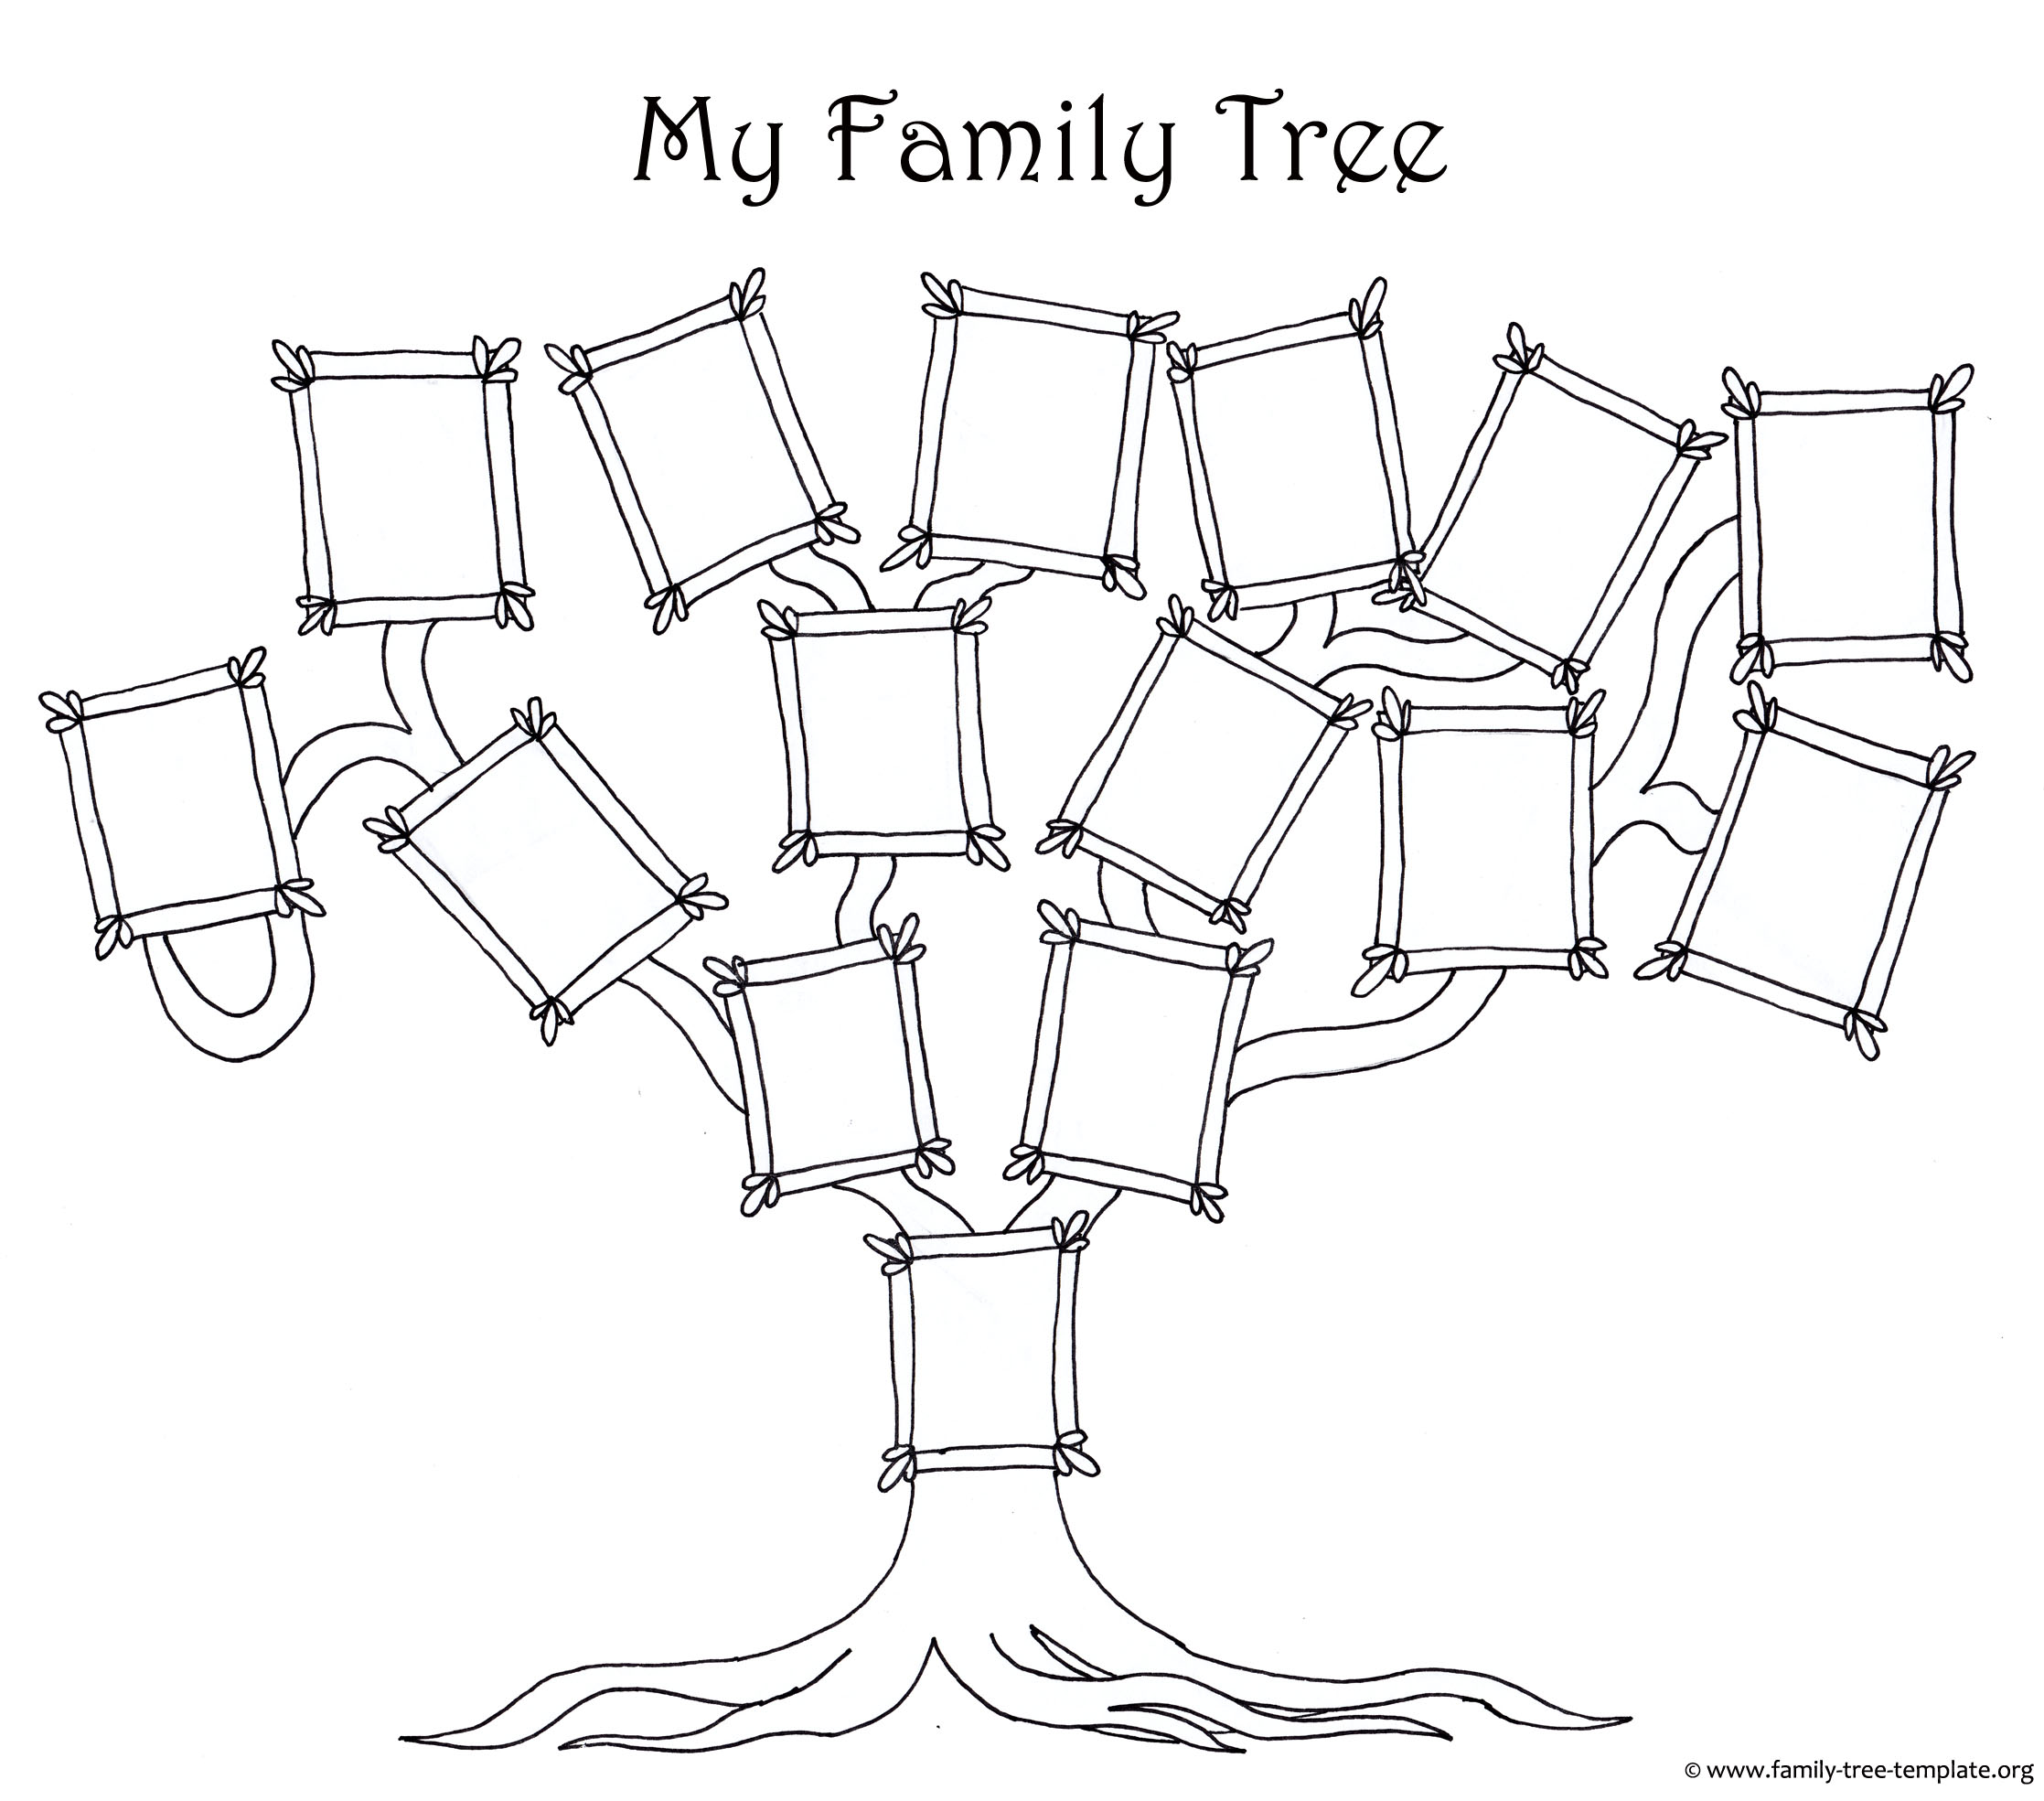 plain family tree template - free family tree template designs for making ancestry